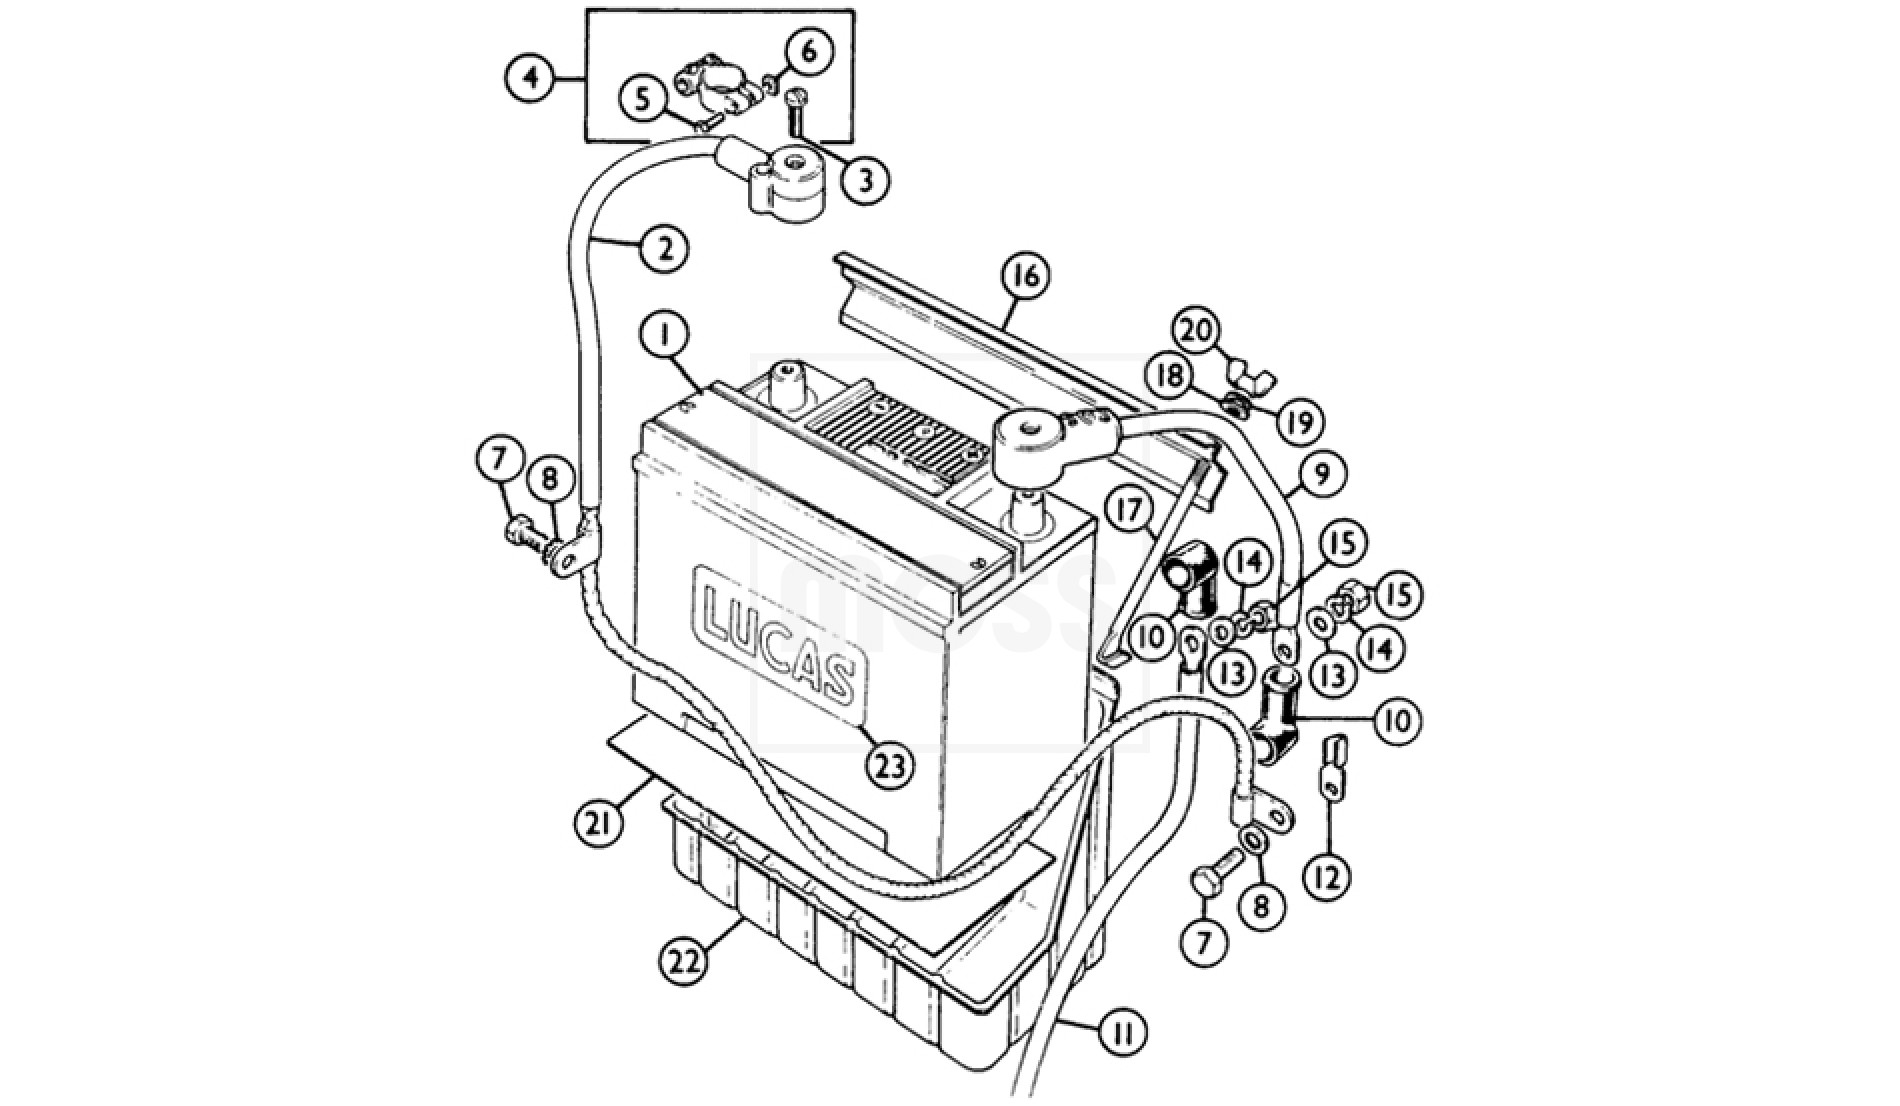 Mgb Wiring Tips Free Diagram For You Electronic Circuit Bs3939 85 Toyota Corolla Vacuum Auto 1977 Engine Bay